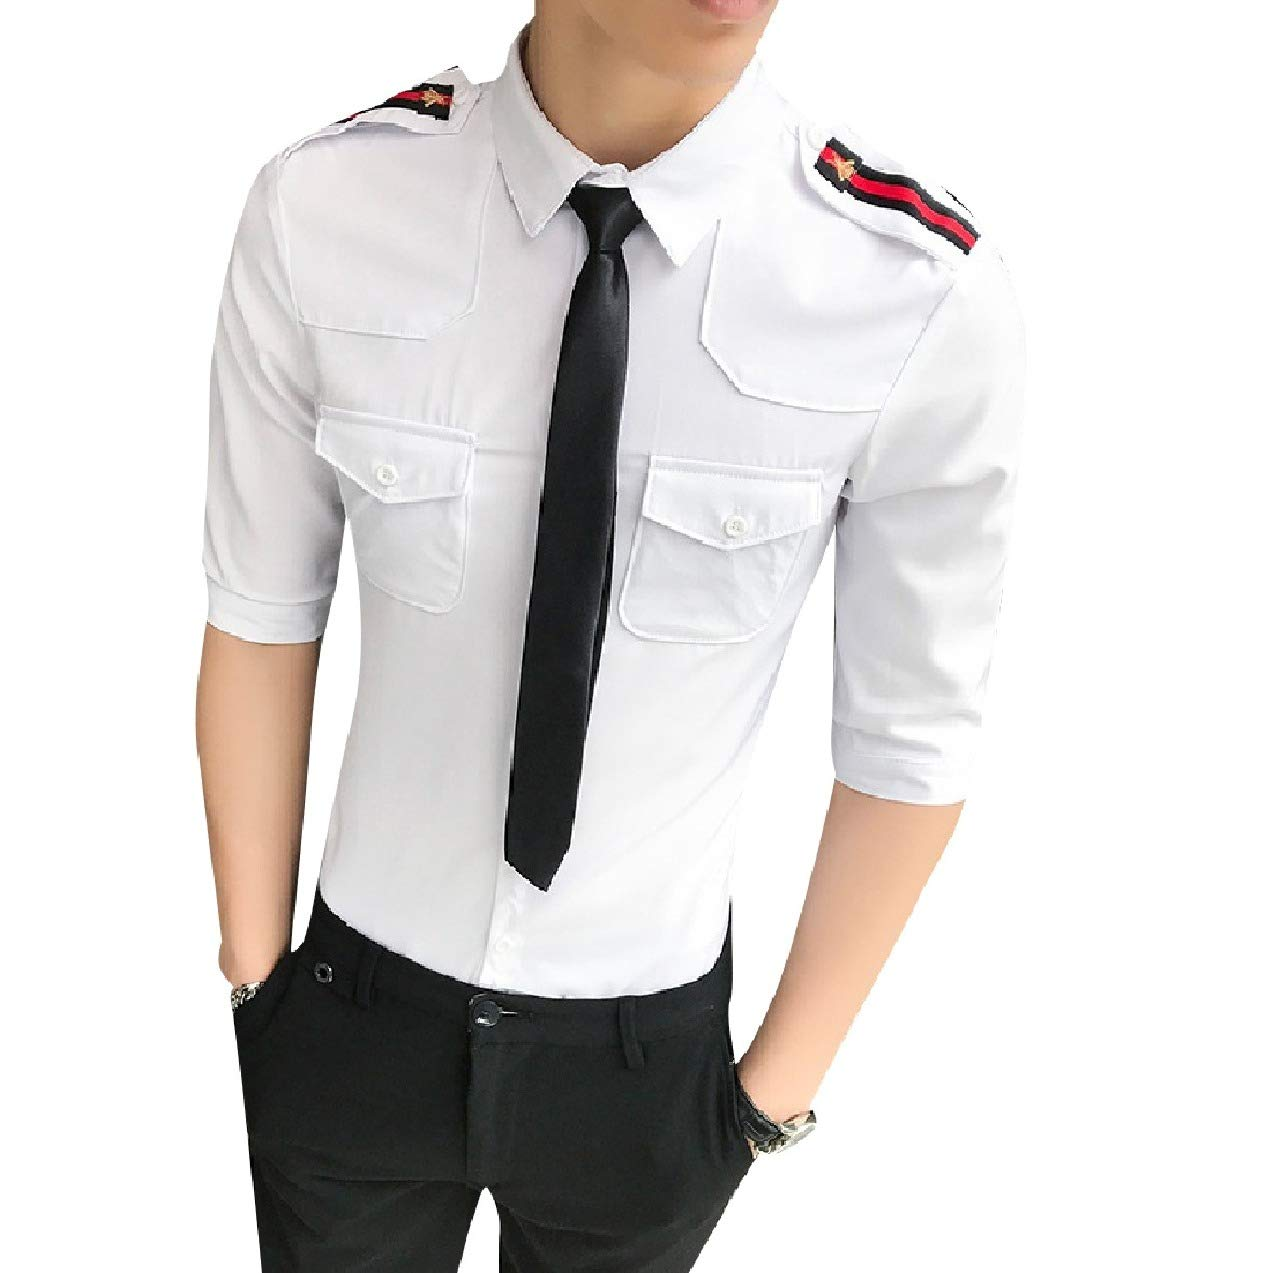 Zimaes-Men Front Slim Casual Uniforms Shoulder Board Woven Shirt